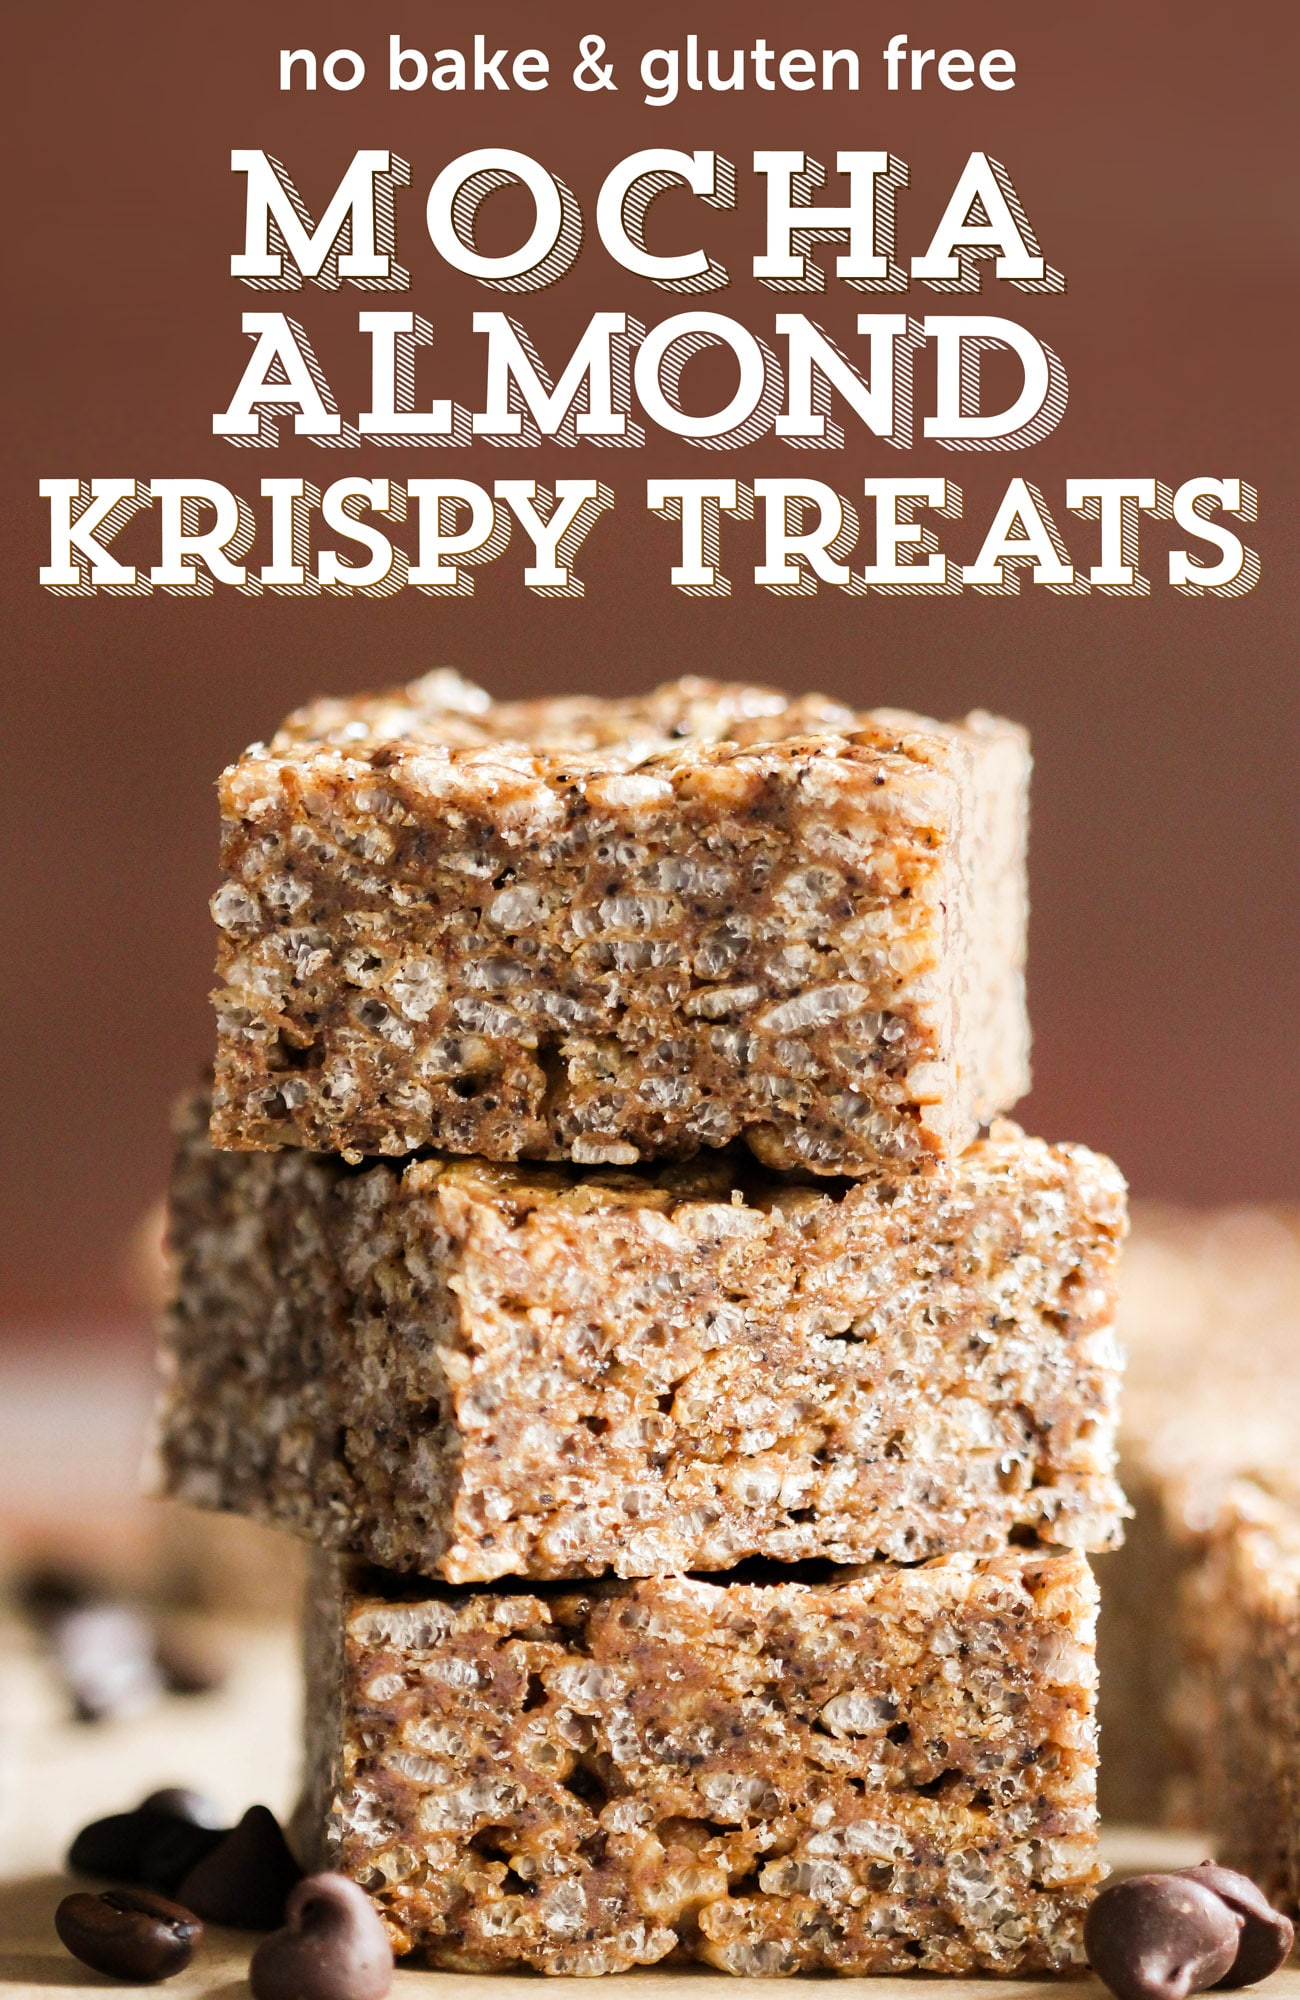 Healthy Mocha Almond Krispy Treats (gluten free, refined sugar free, high protein)